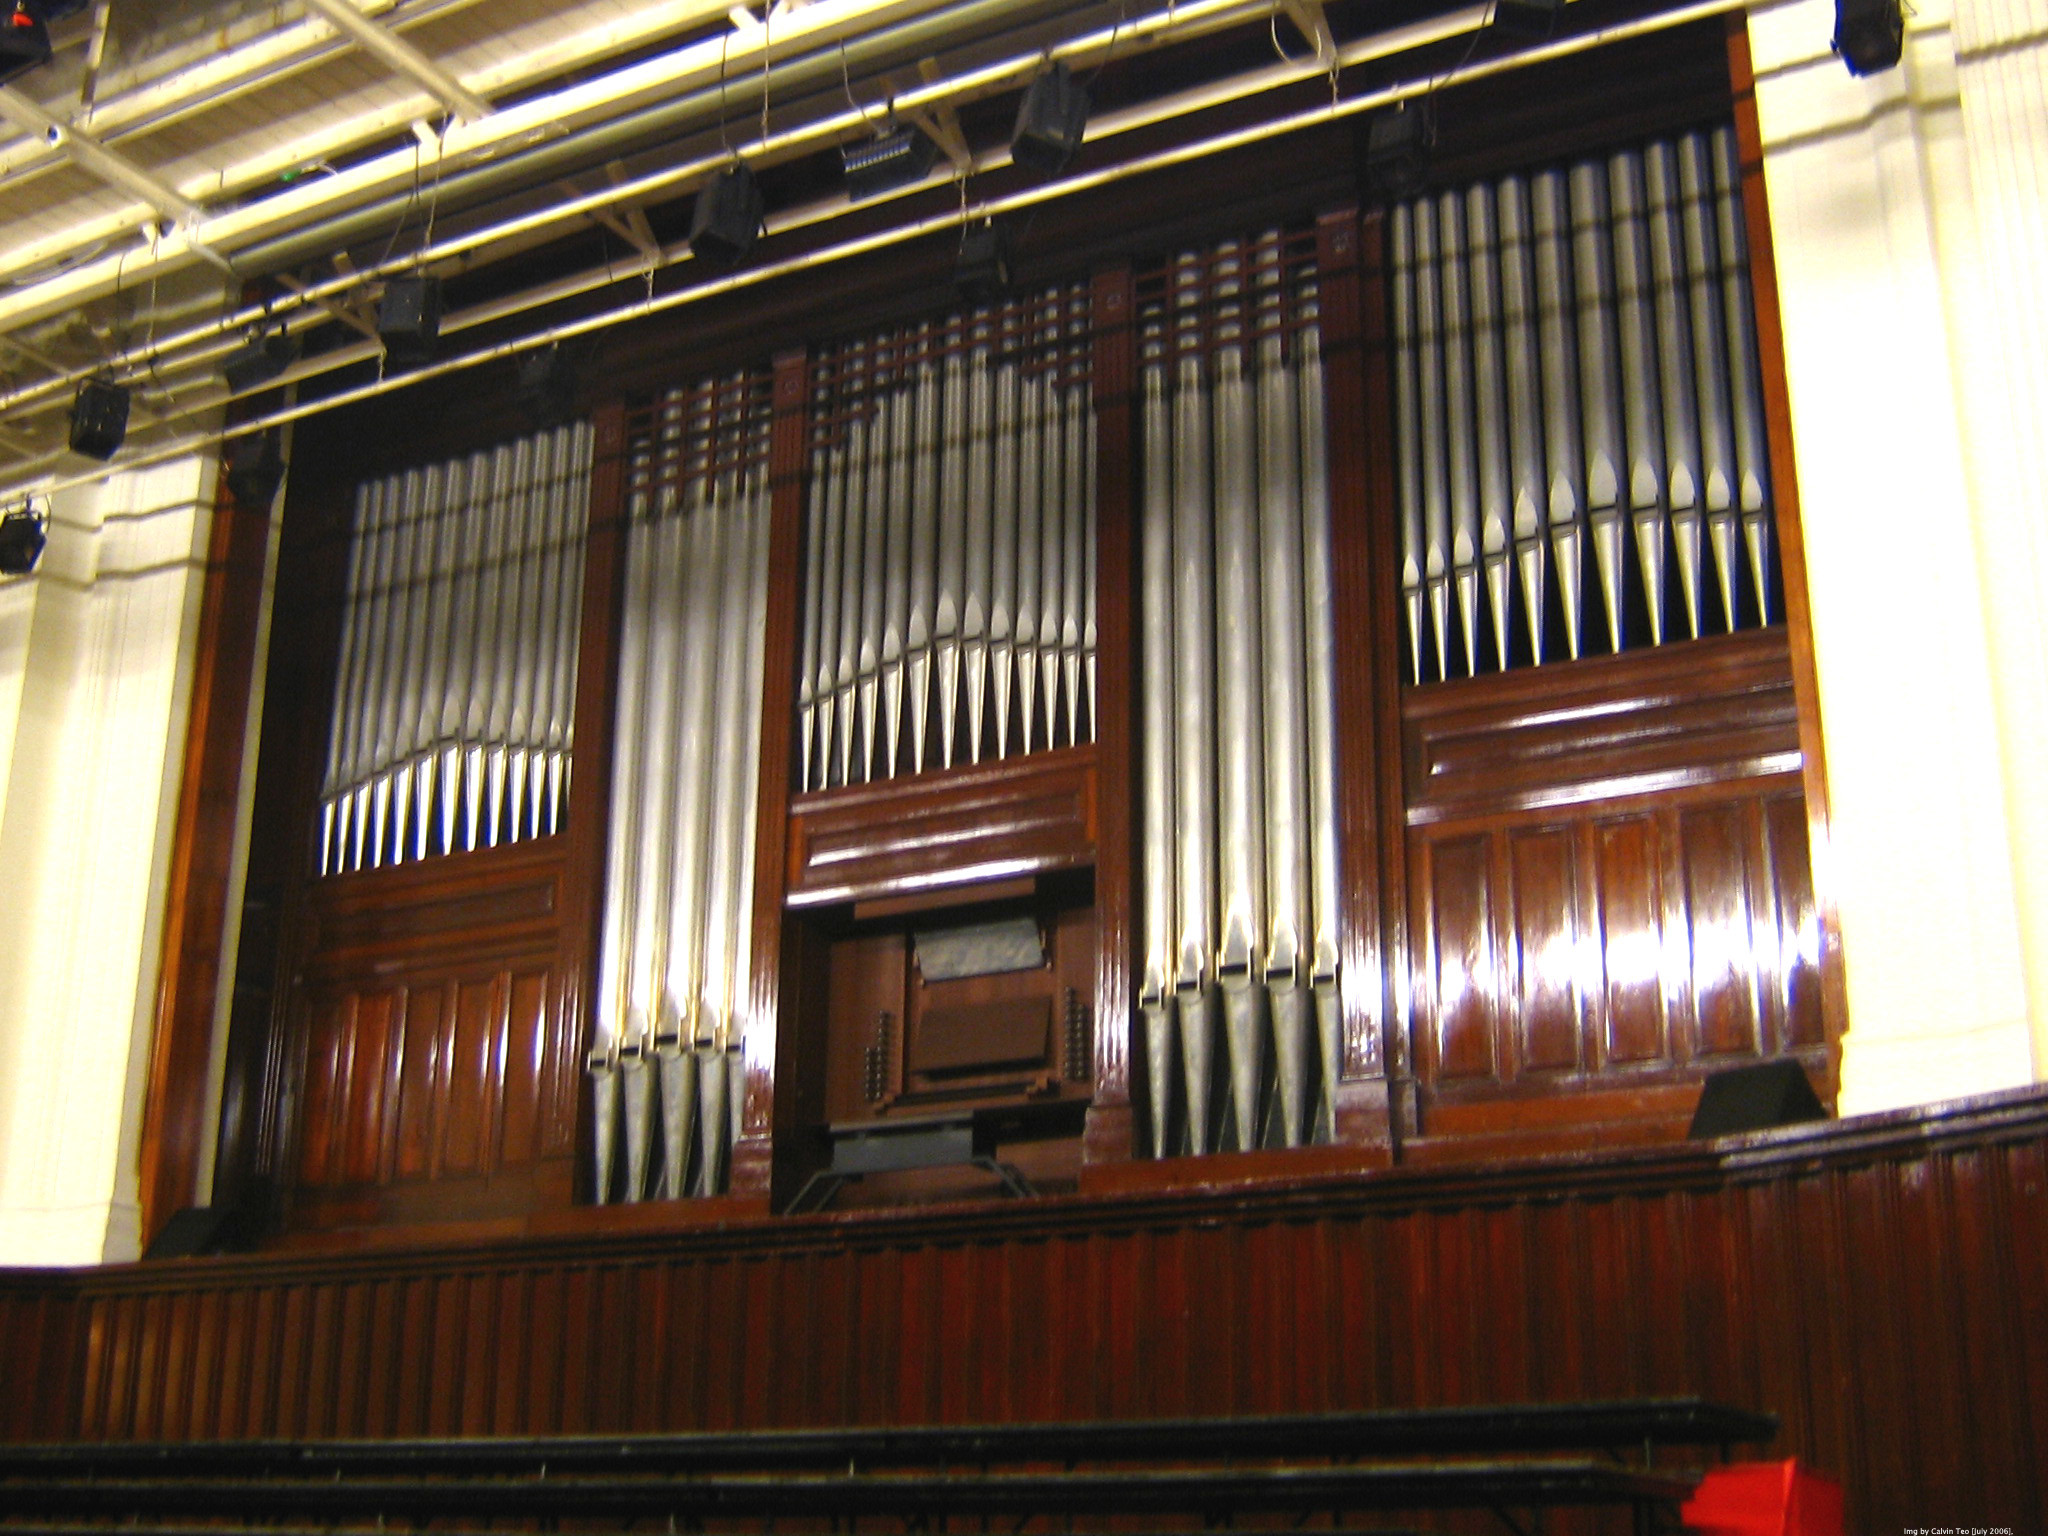 2048x1536 File:Victoria Concert Hall pipe organ.jpg